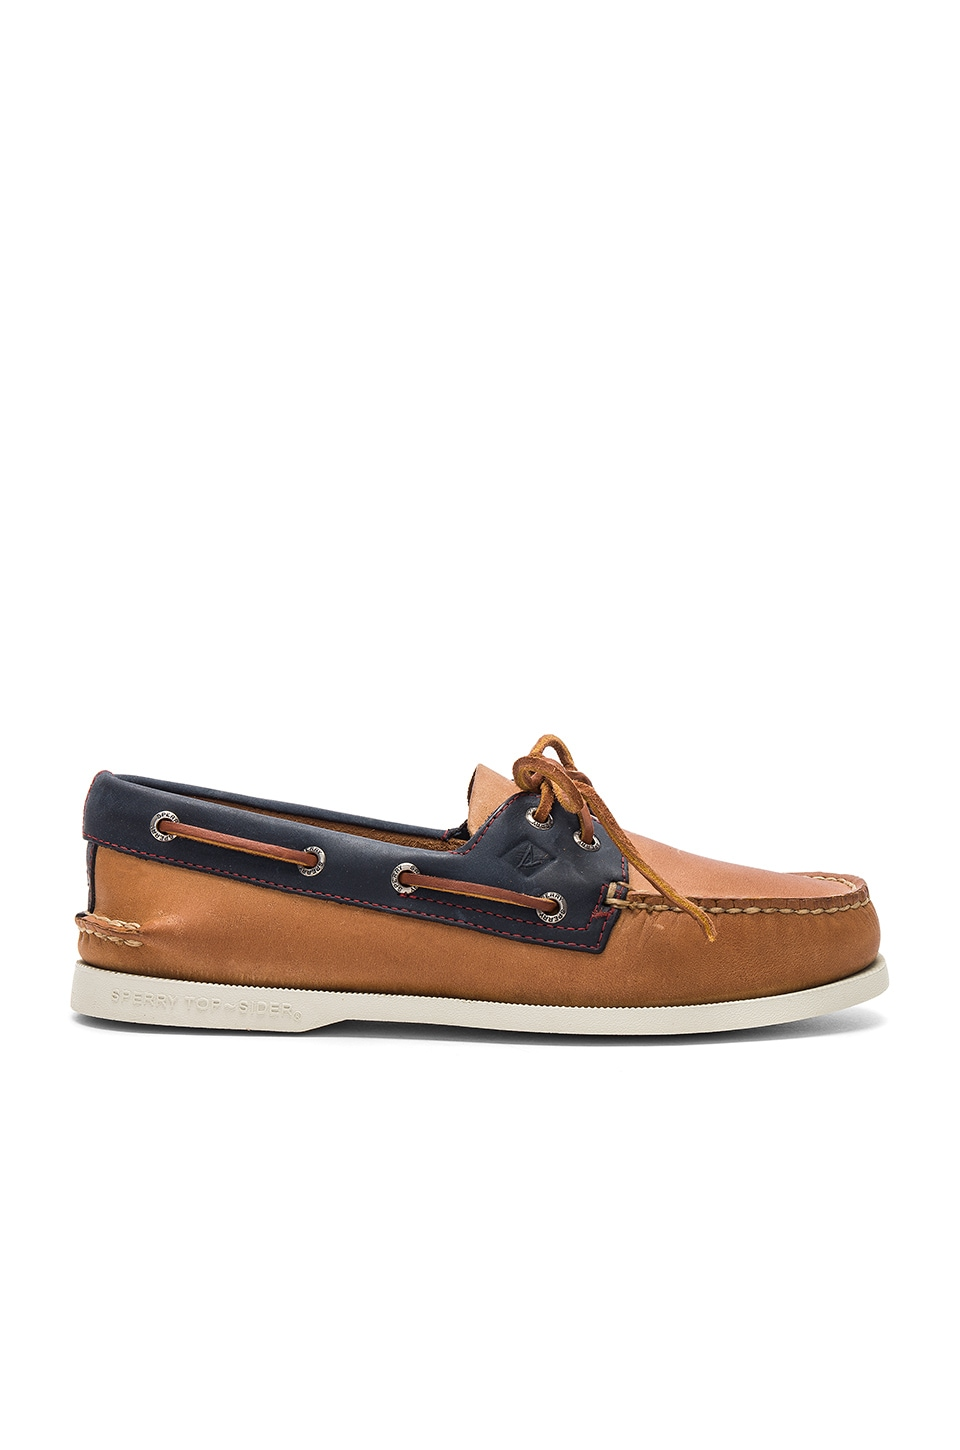 AO 2 Eye Sahara Pack by Sperry Top-Sider